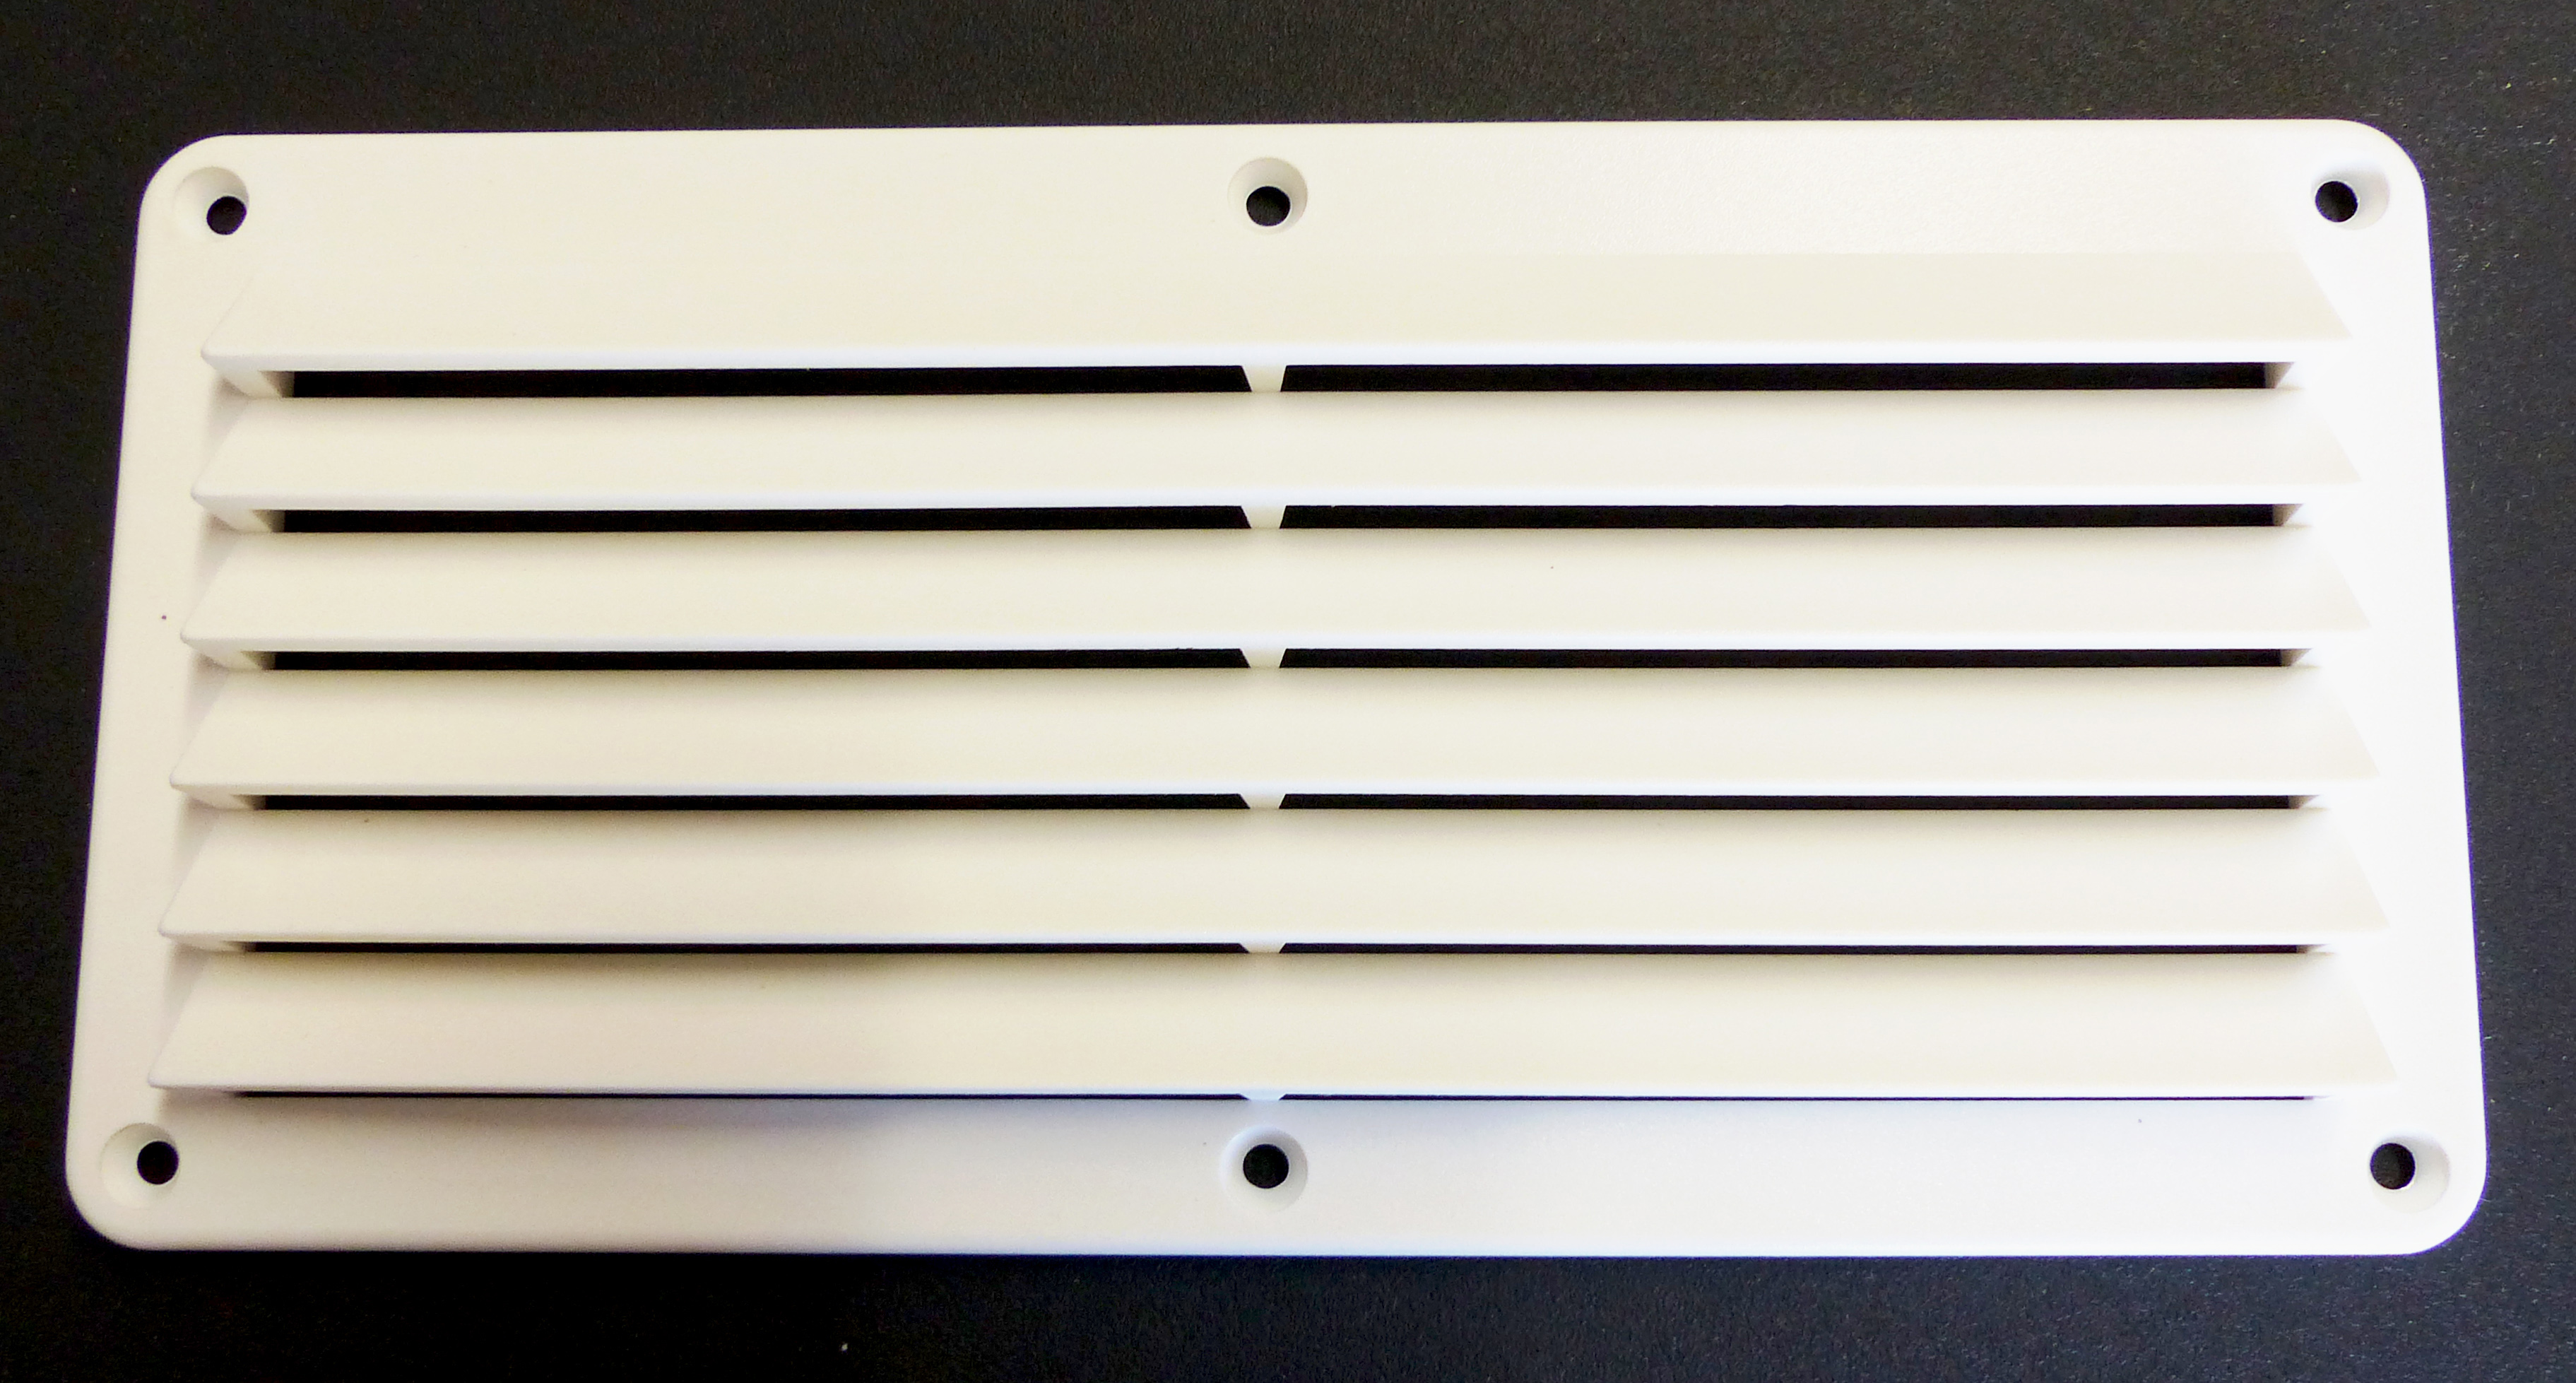 white plastic vent front view